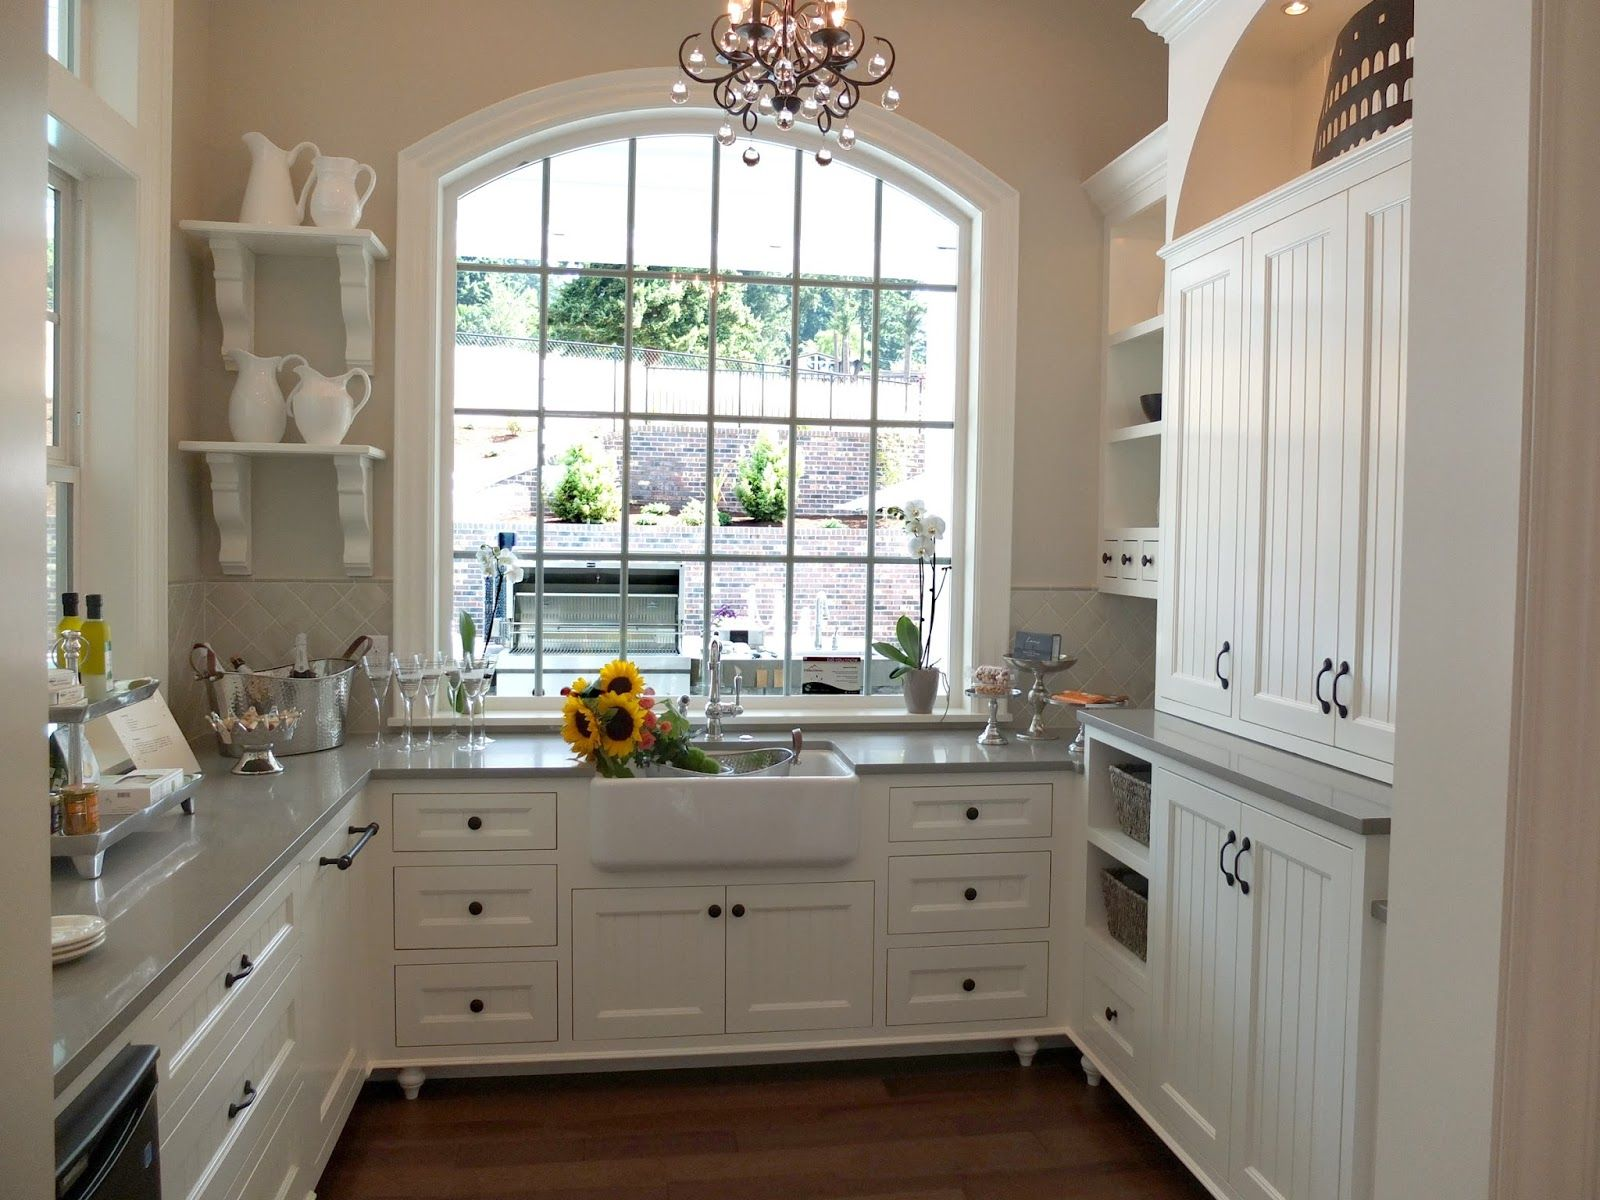 898755c6df711662b613b345571f31da Pantry Ideas Kitchen Amp Nook on kitchen pantry designs, kitchen pantry with small floor plans, kitchen slide out pantry shelves, kitchen with no pantry,